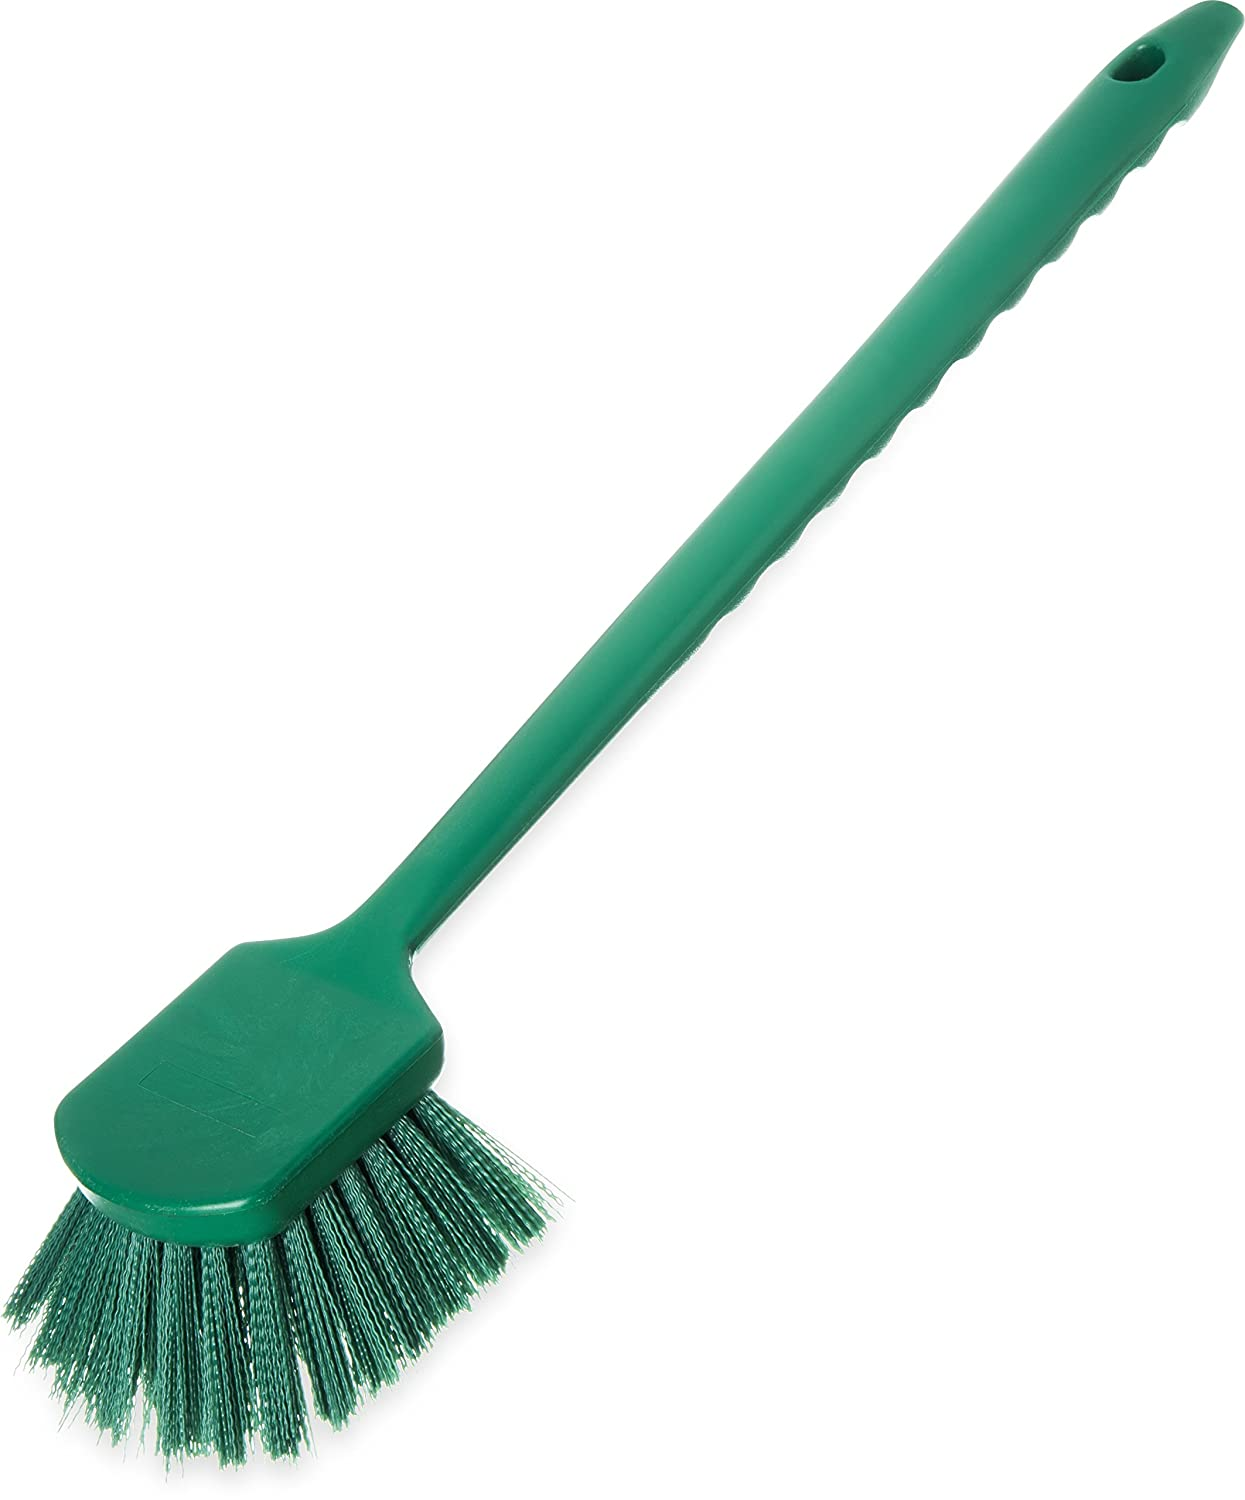 Carlisle 40501C09 Commercial Utility Scrub Brush Polyester Bristles 20 x 3 Green Pack of 6